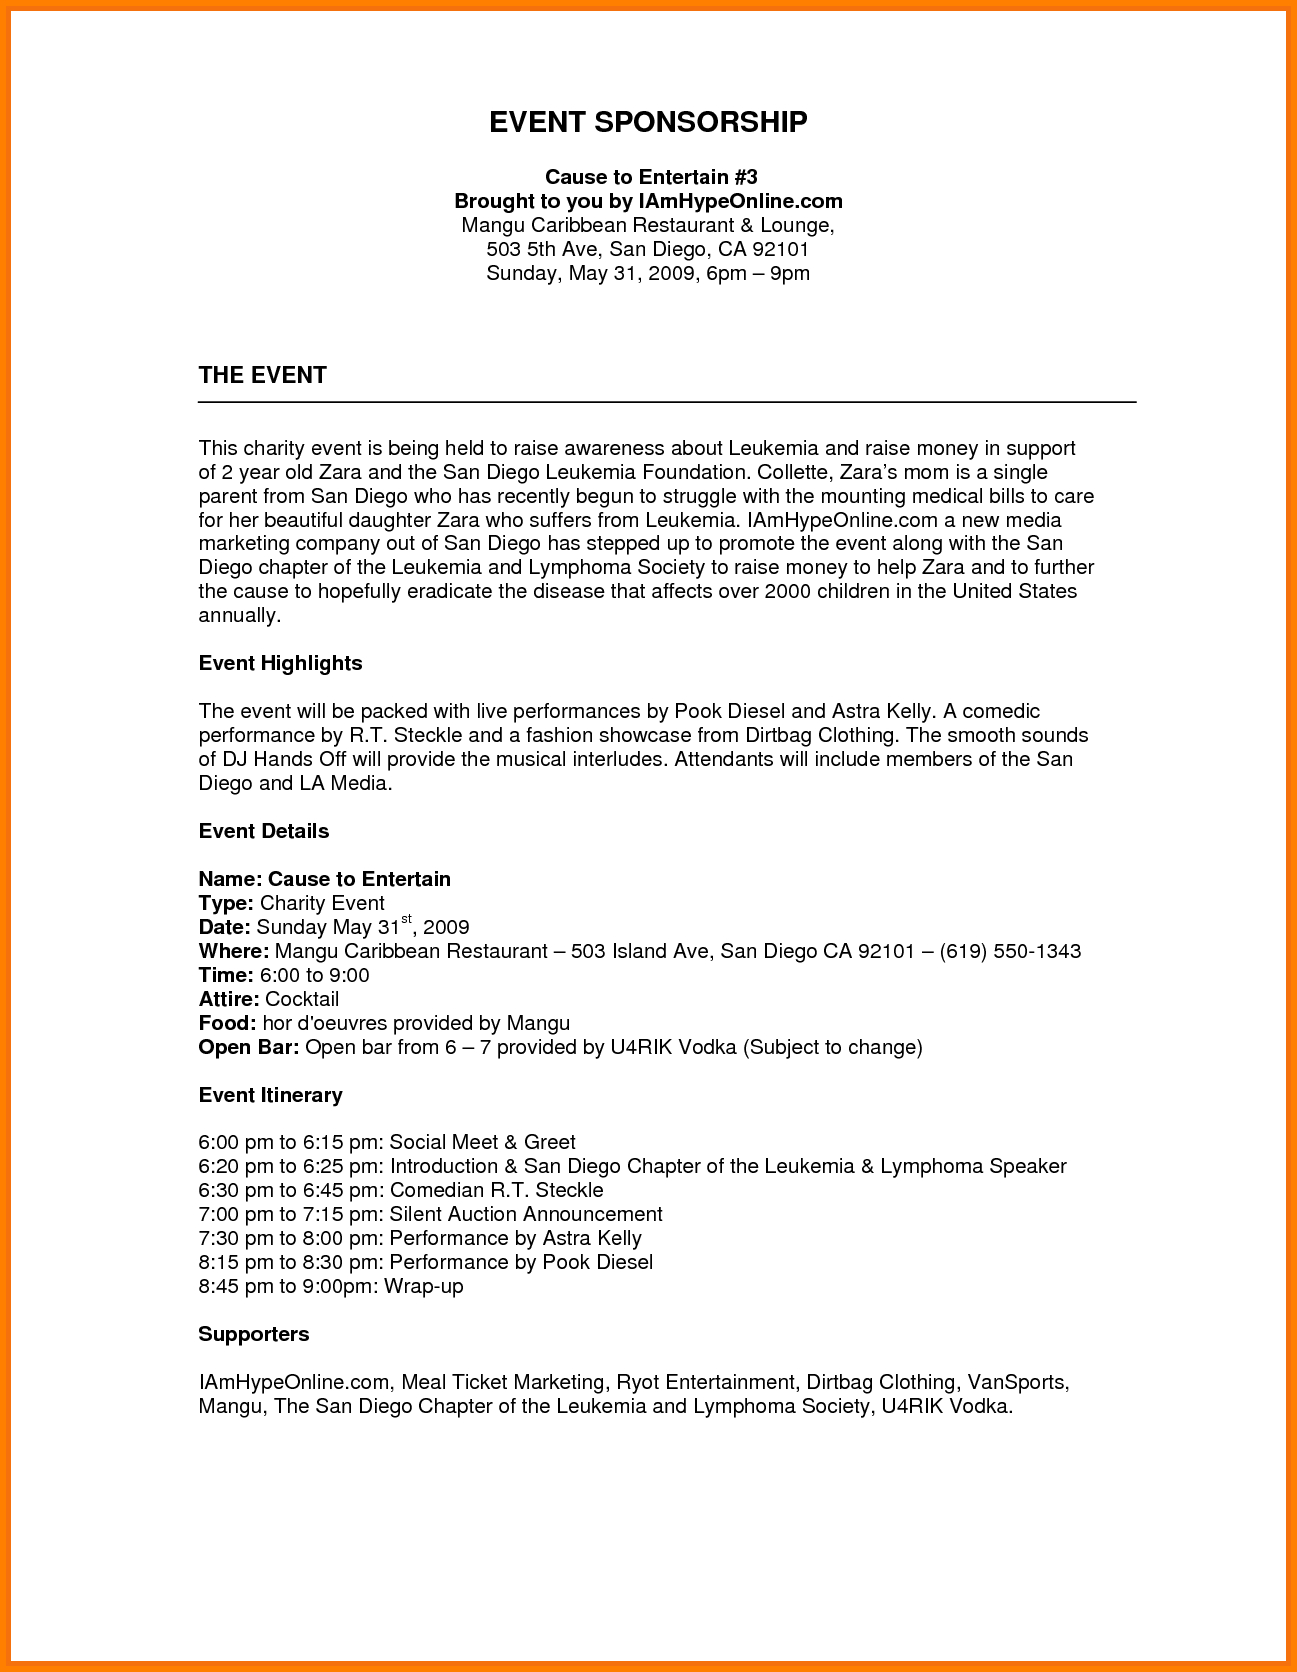 event sponsorship letter template Collection-Image result for sponsorship proposal template FinanceTemplate Finance 18-n